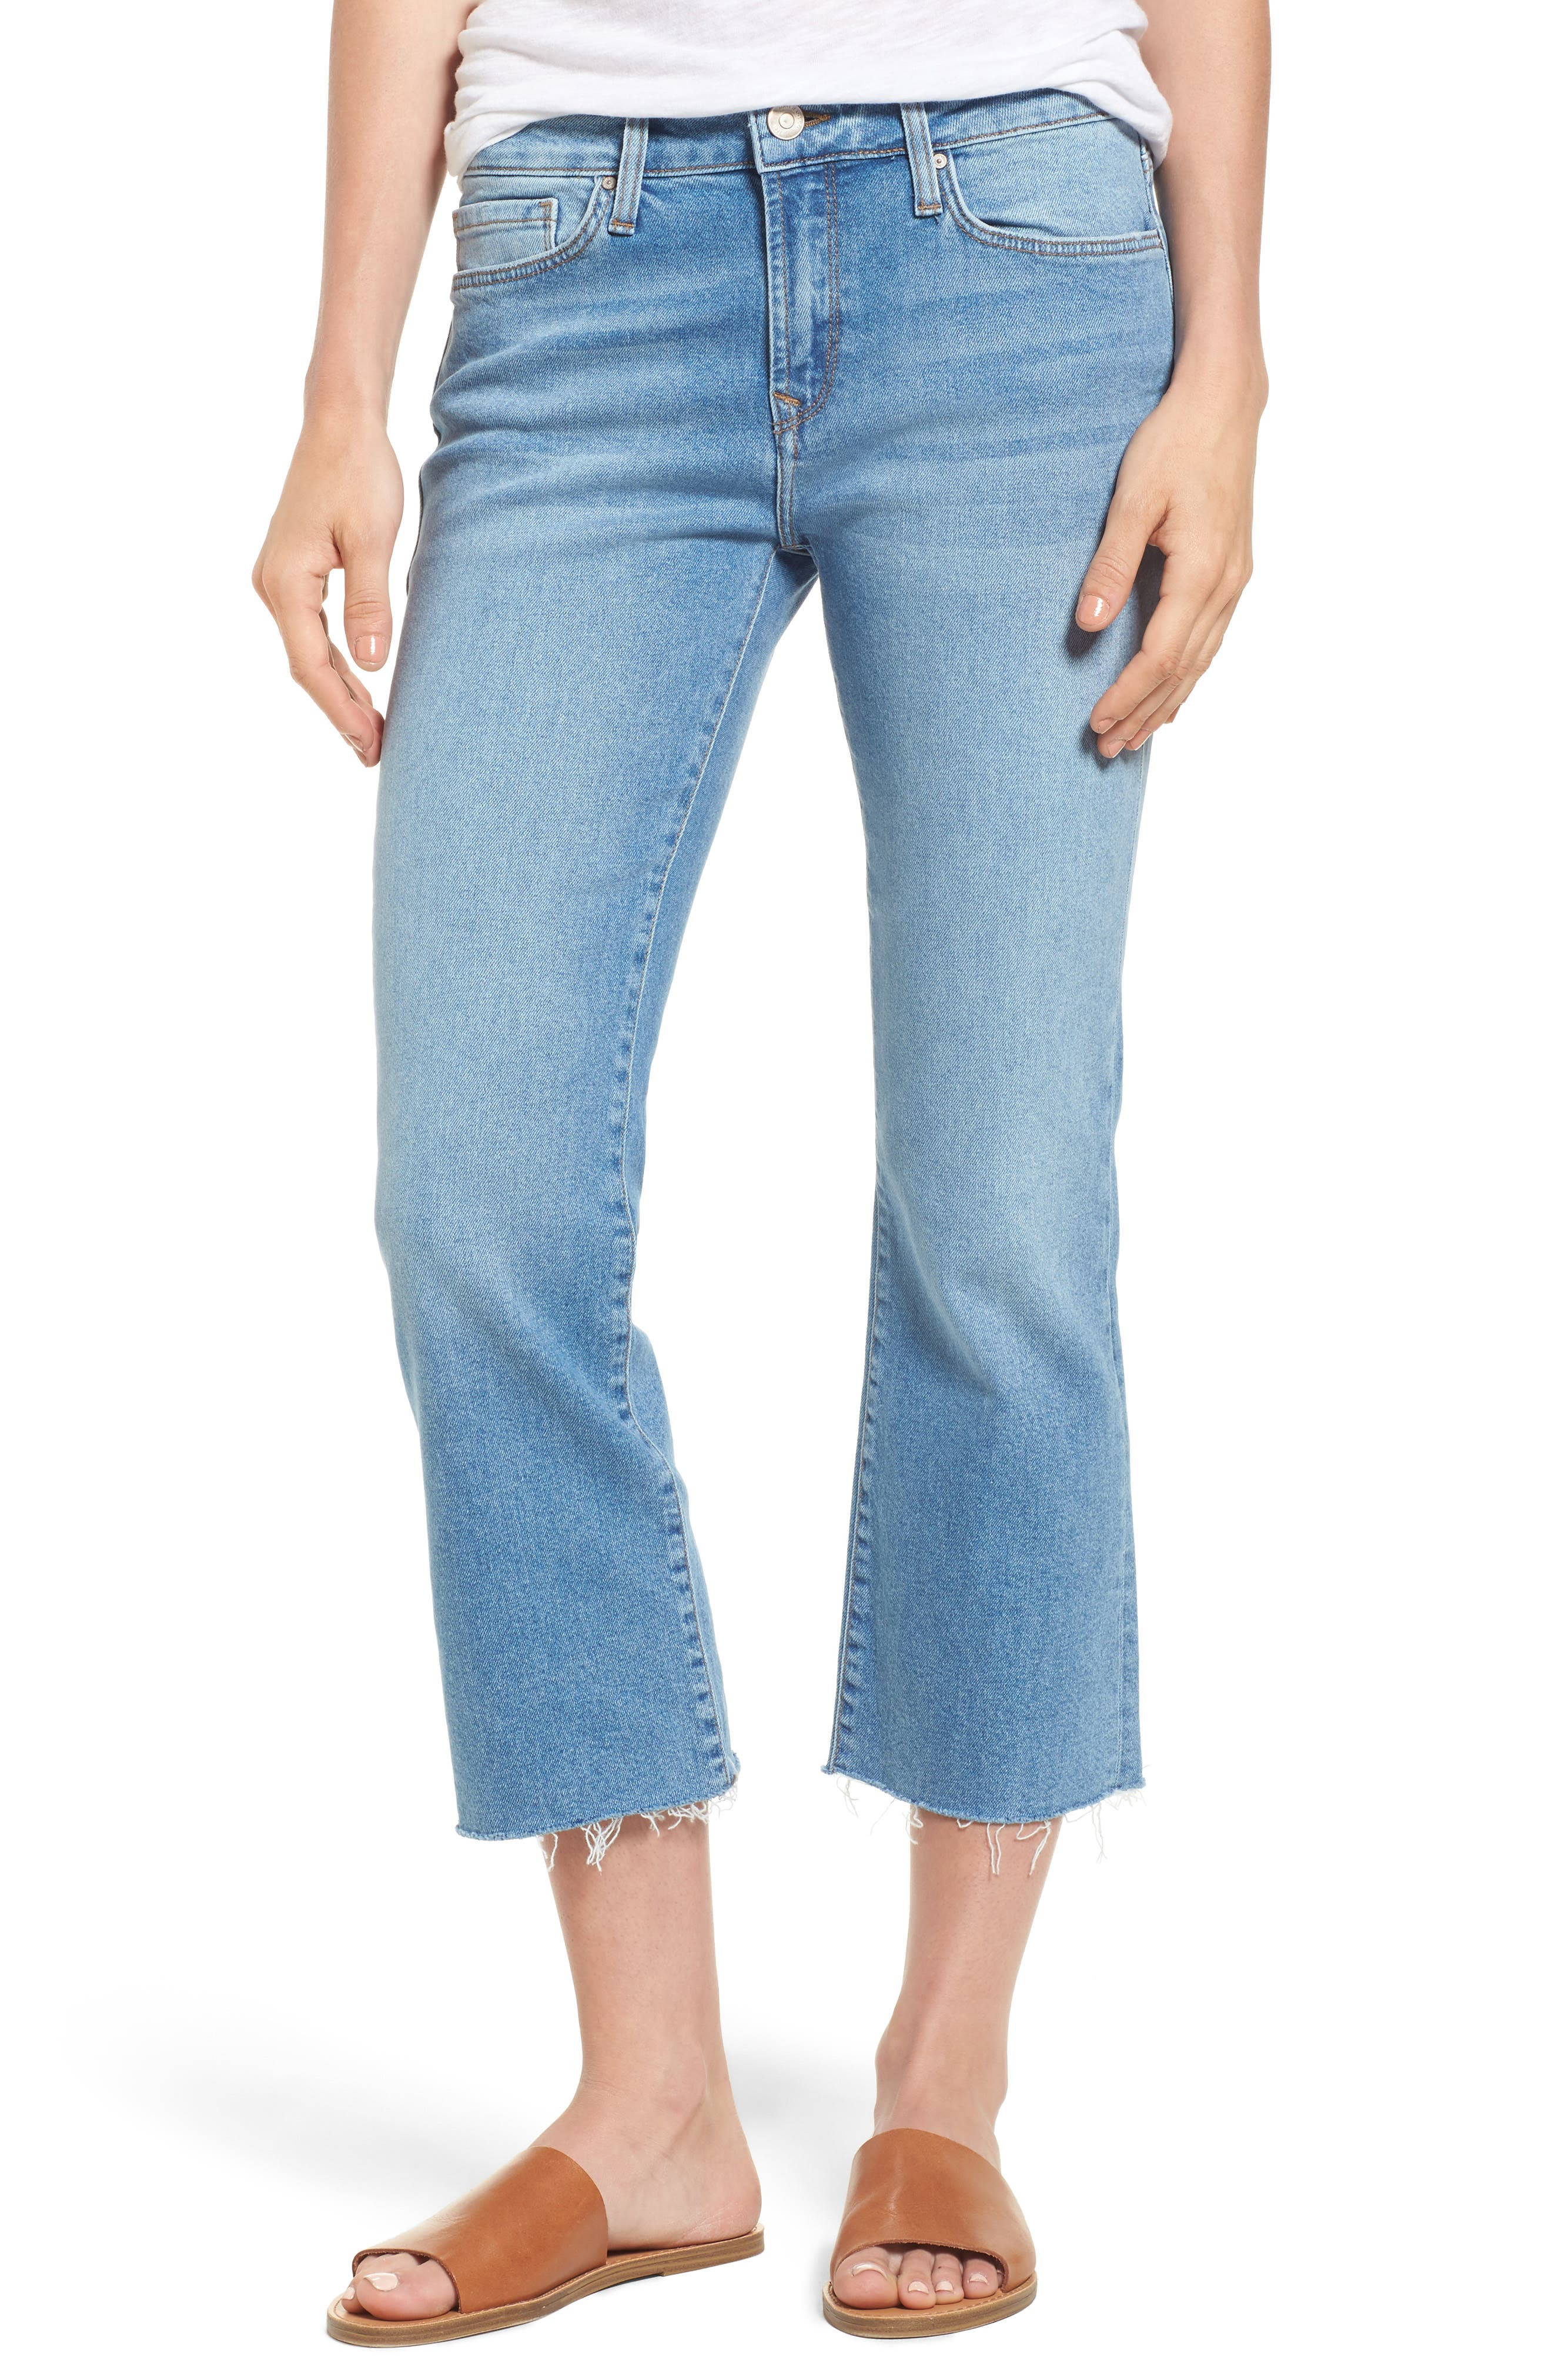 Anika Stretch Crop Jeans,                             Main thumbnail 1, color,                             420